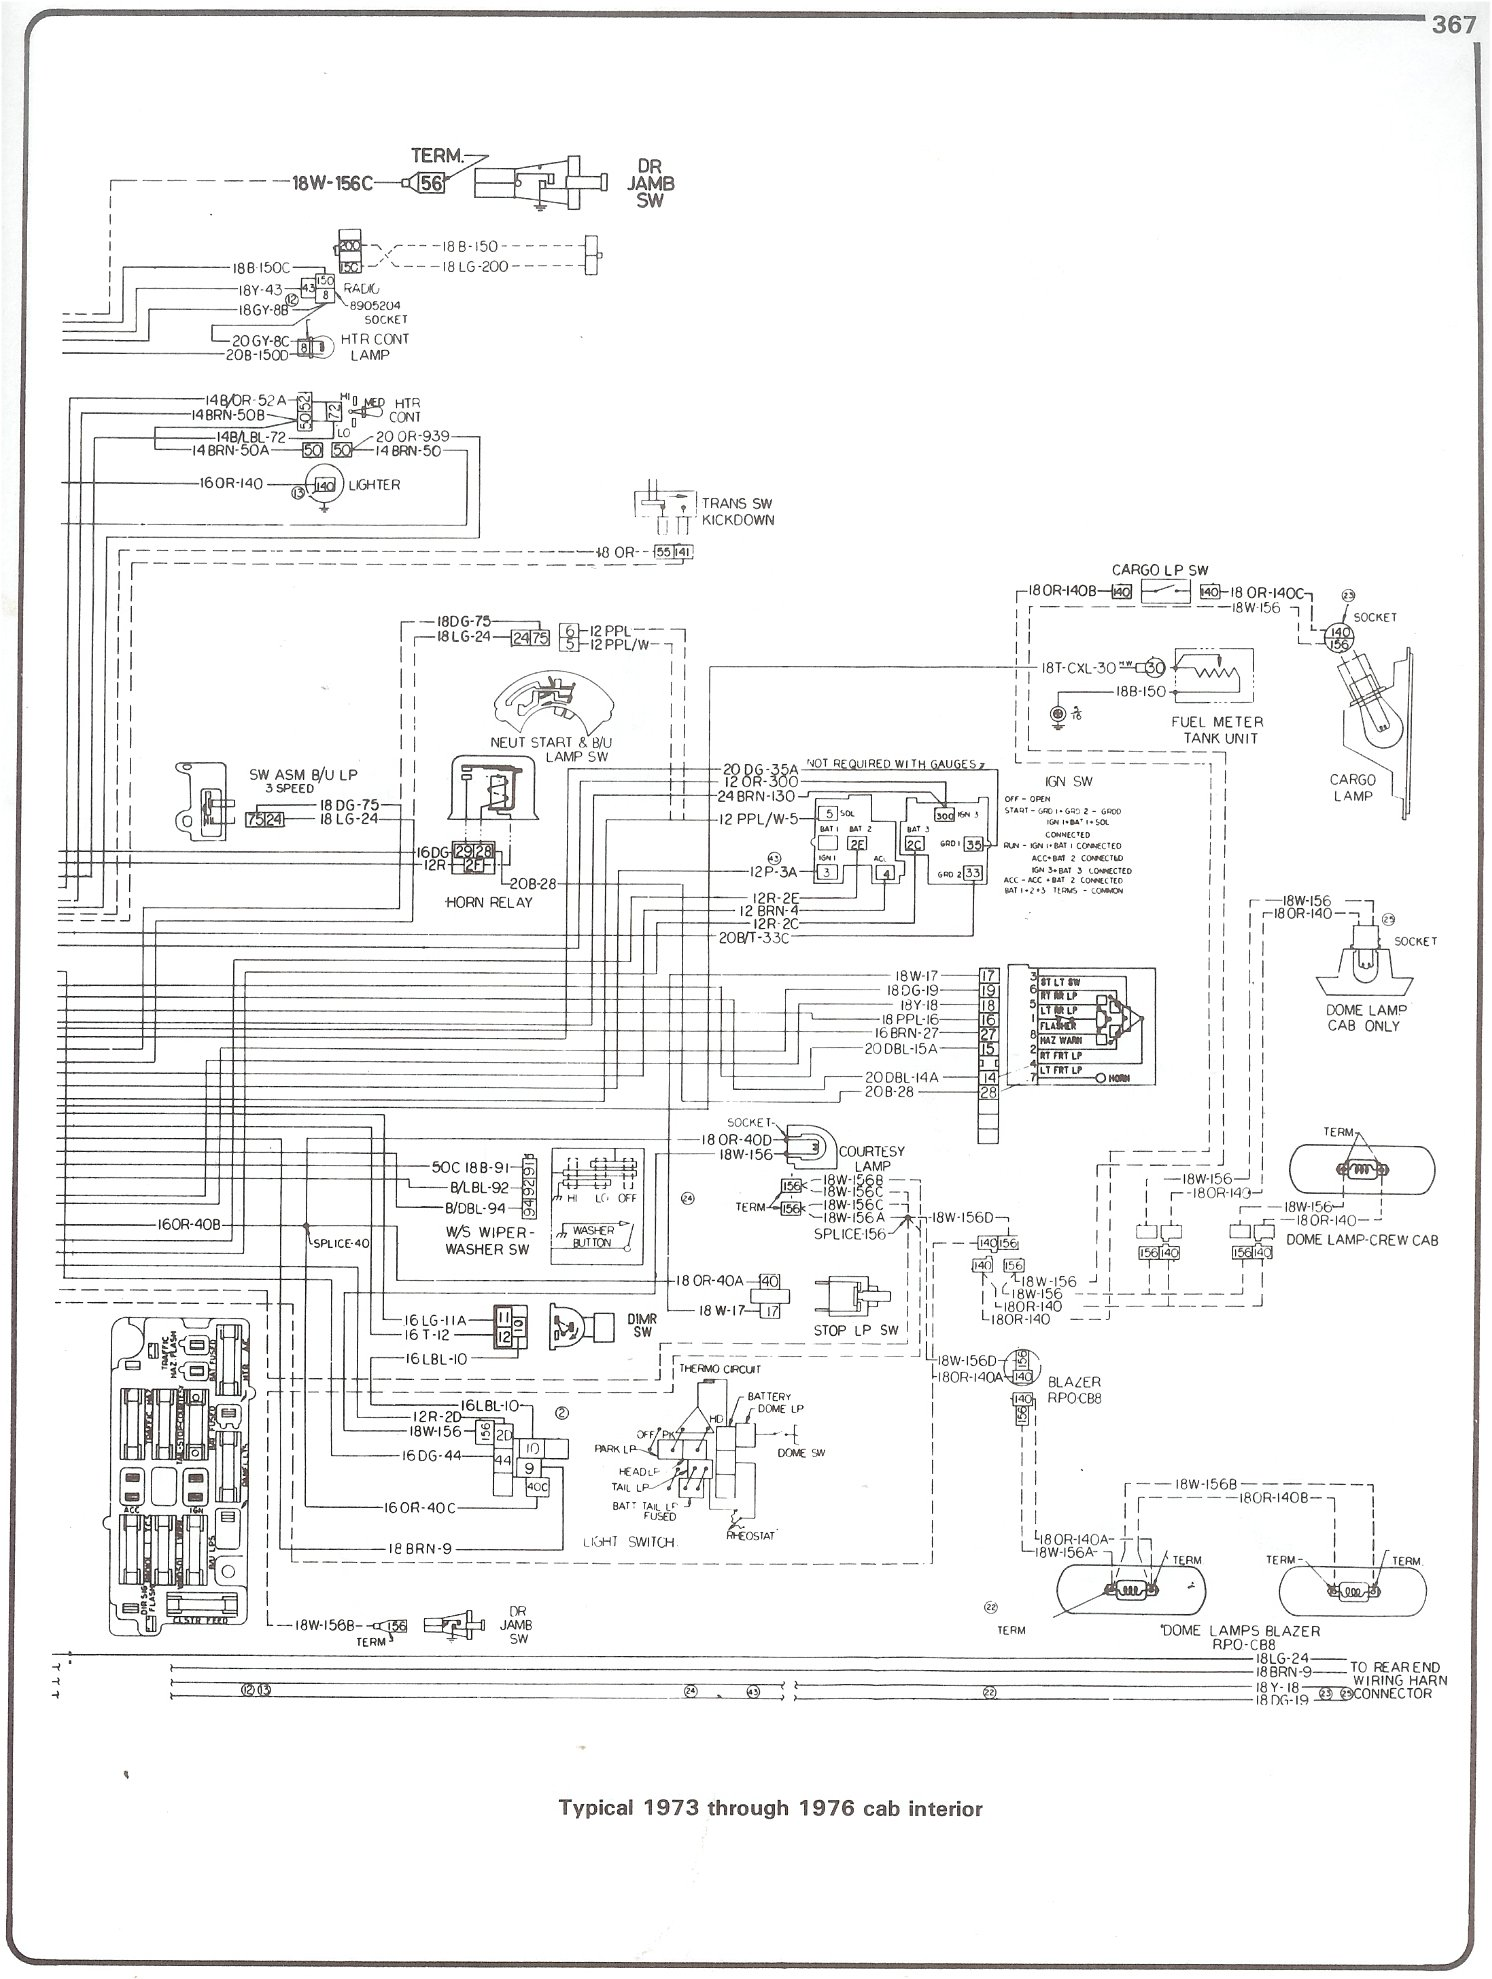 complete 73 87 wiring diagrams rh forum 73 87chevytrucks com 1966 GMC Truck Wiring Diagrams GMC Sierra Wiring Diagram